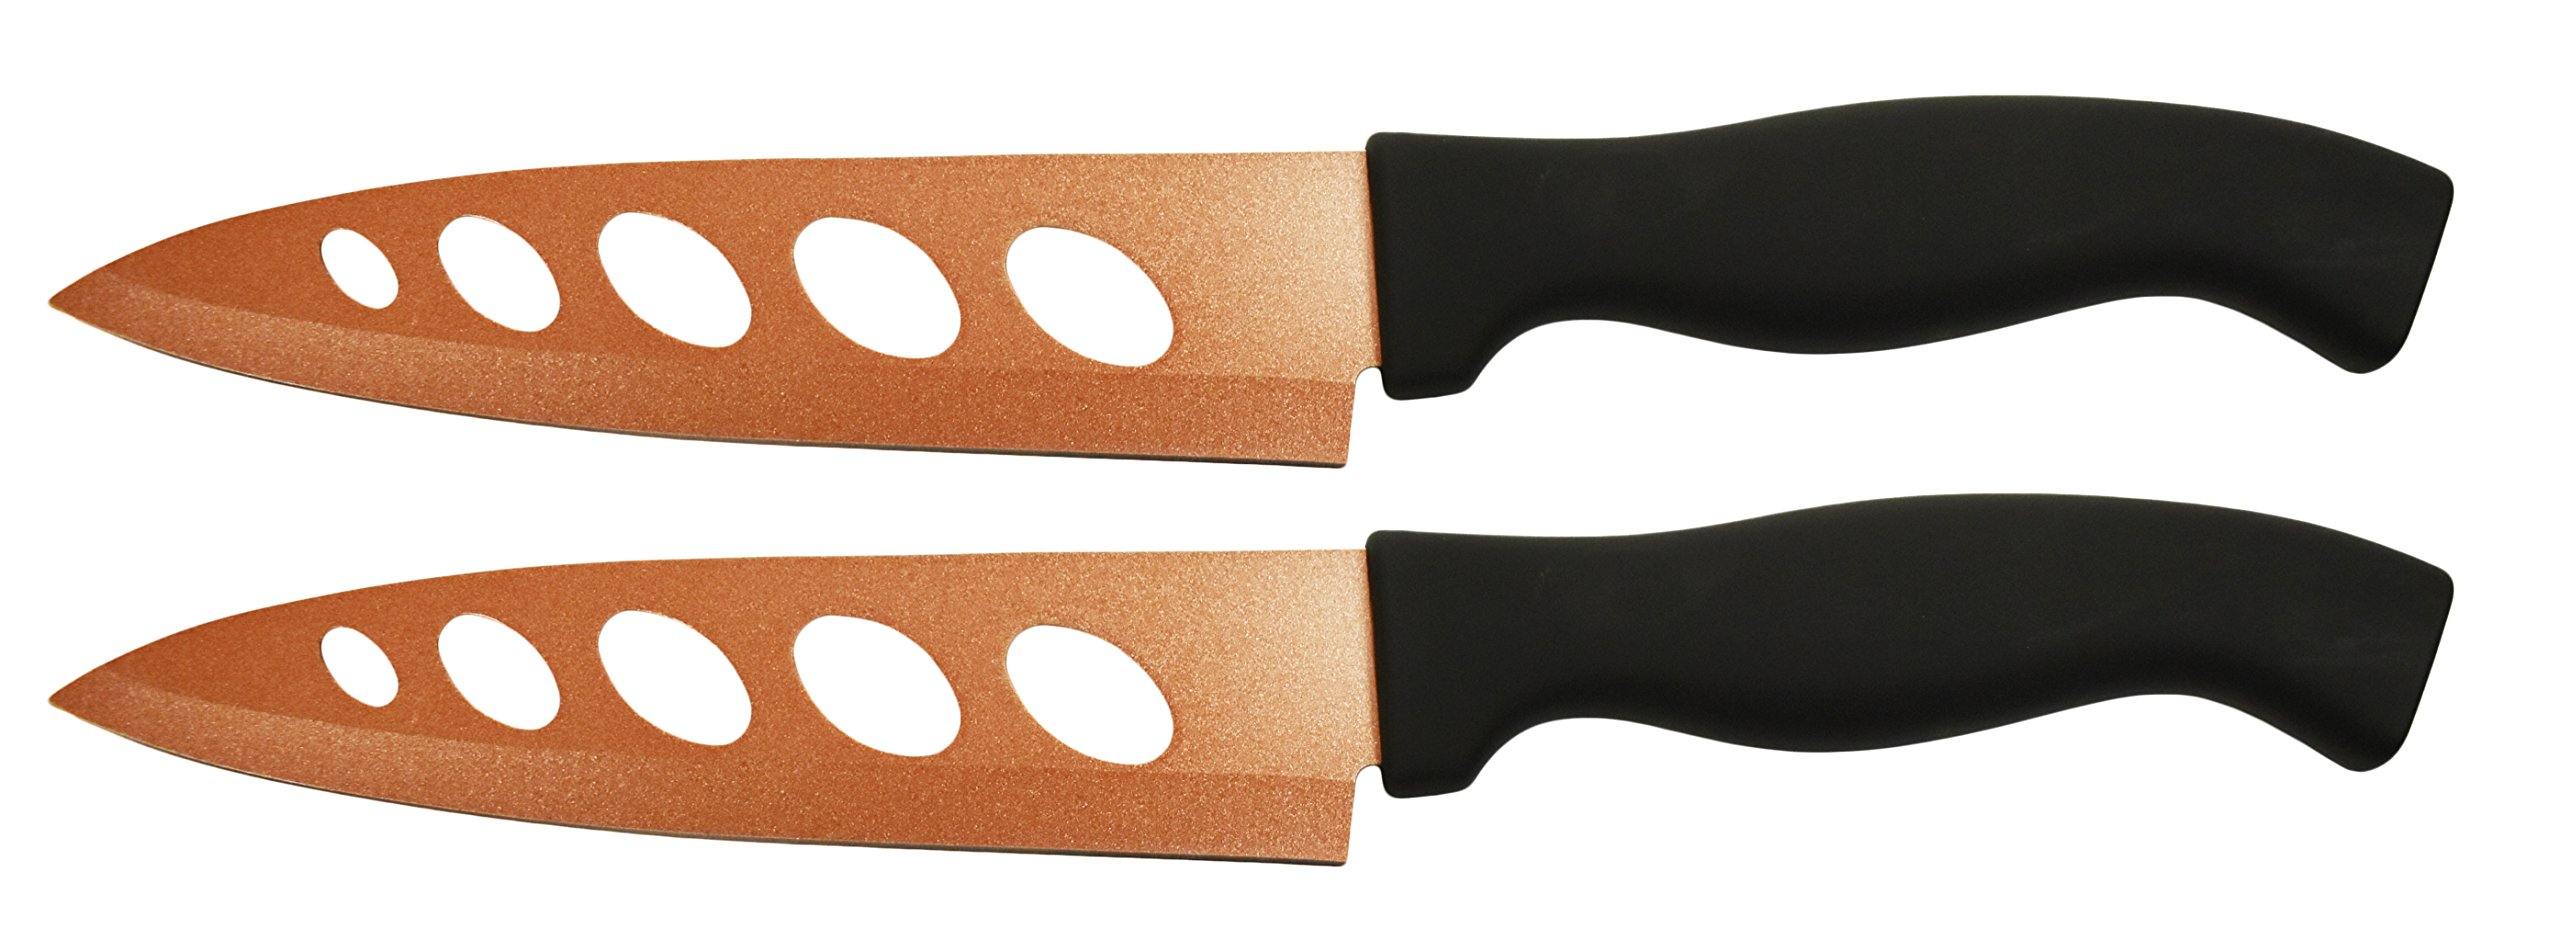 Set of 2 Copper Knives! 6.25'' Blade - As Seen on TV Never Sharpen Knives! Stays Sharp Forever! Effortless Clean Cuts Every Time! Ideal for Chopping, Dicing, Mincing, and More! (2) by Tekno